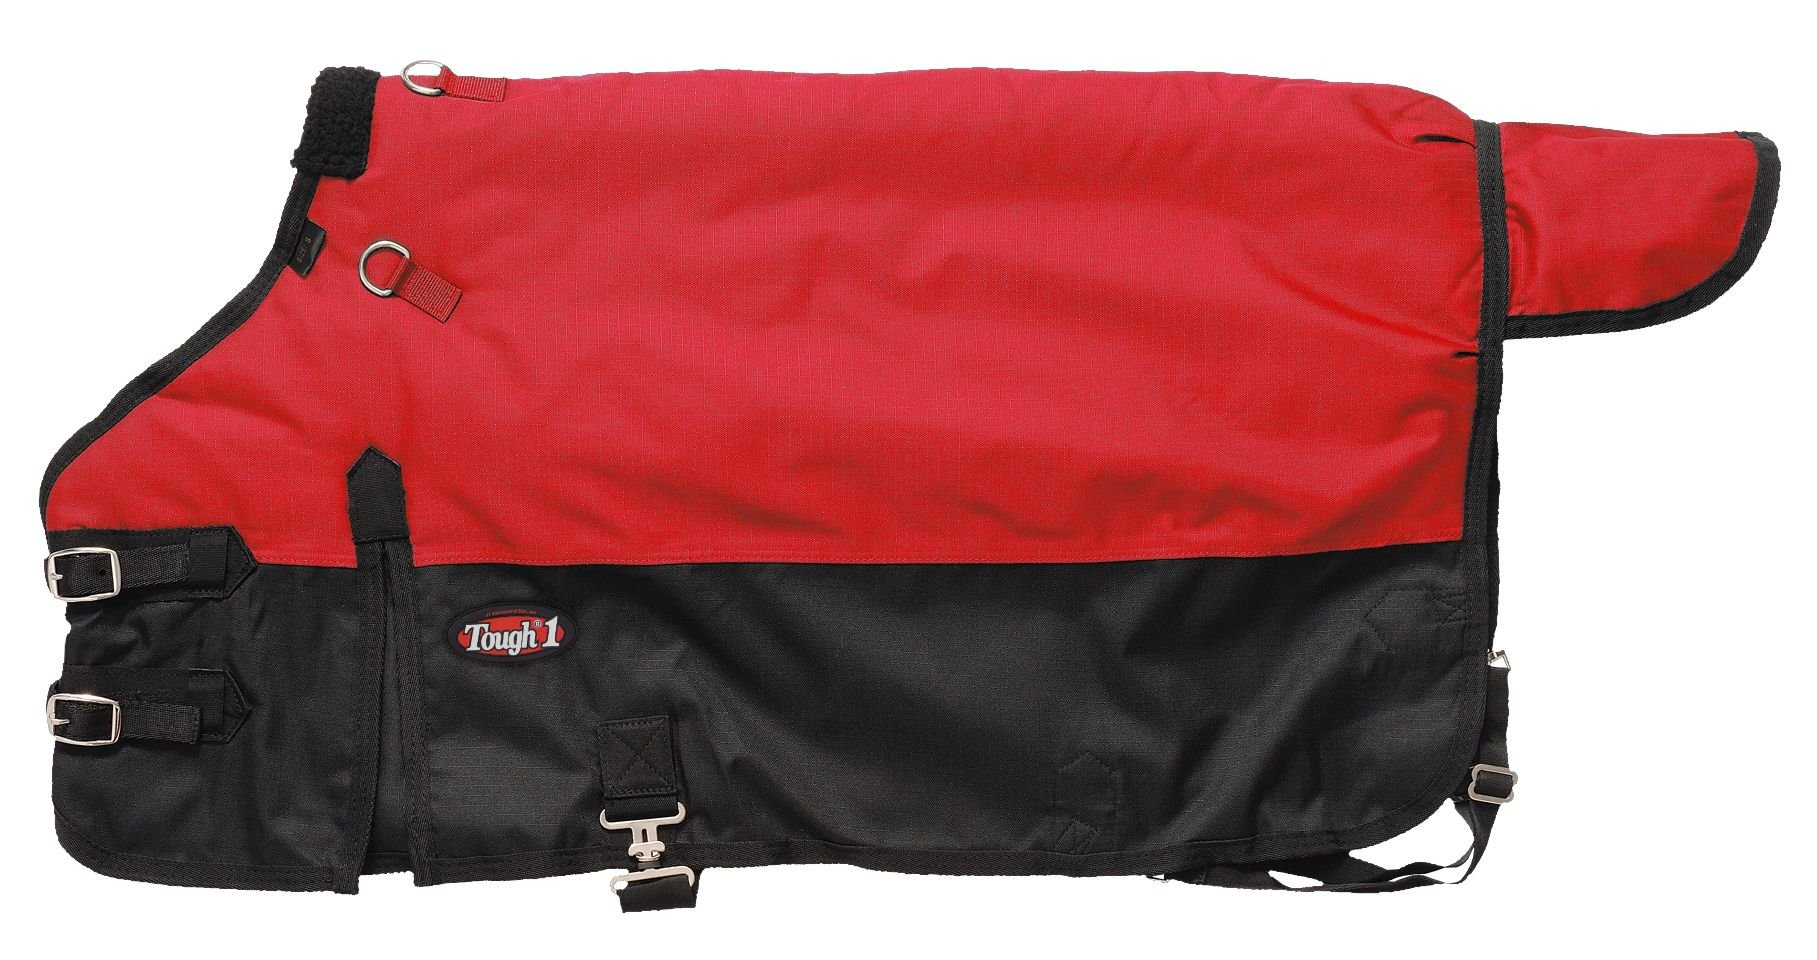 Tough 1 Polar 600D Waterproof Poly Foal Blanket, Red, Large